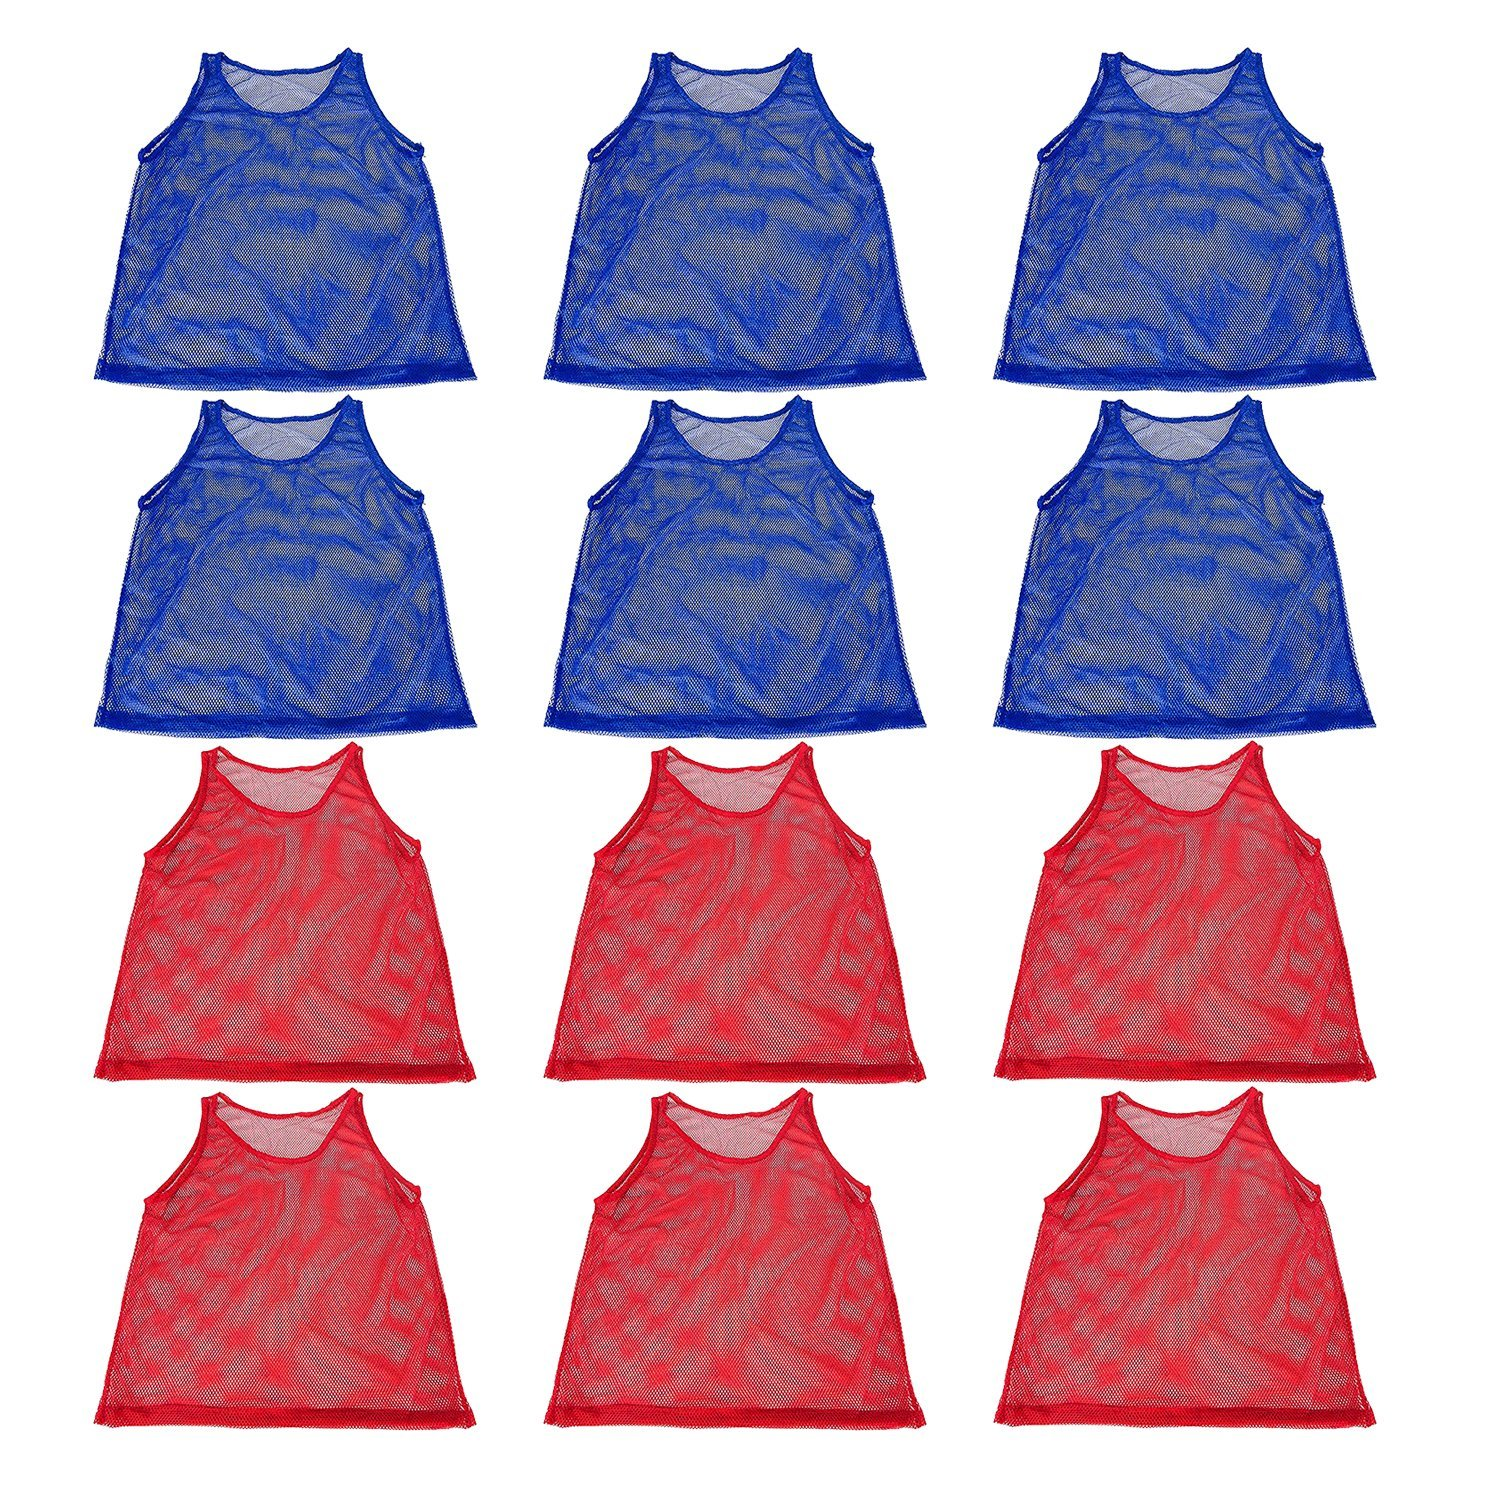 Details about Mesh Scrimmage Practice Jerseys TEENS & ADULTS Training Vests  Pinnies Red Blue.